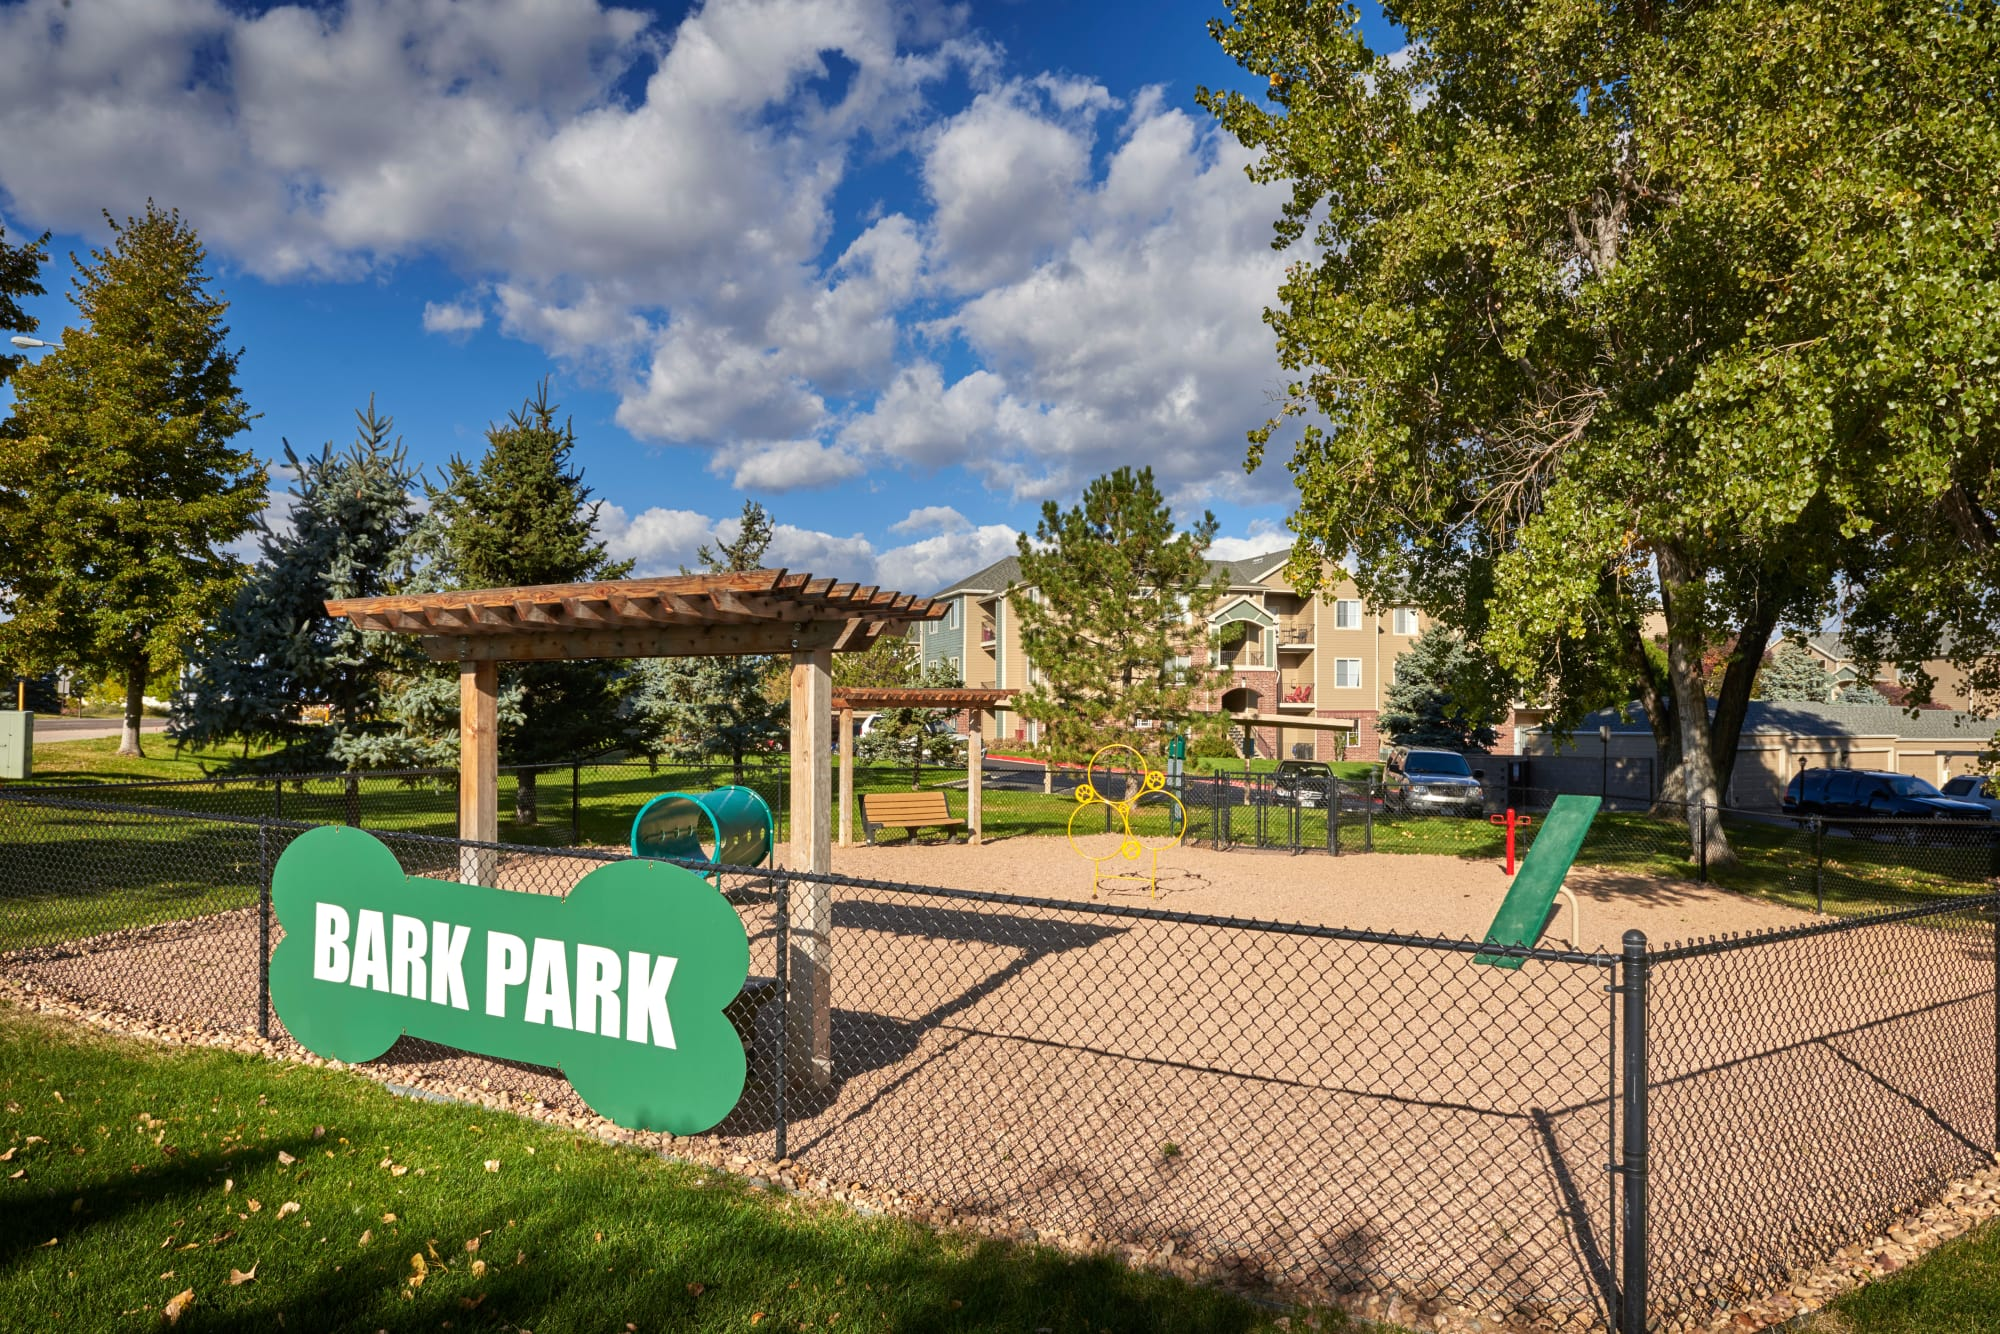 Off-leash dog park at Promenade at Hunter's Glen Apartments in Thornton, Colorado